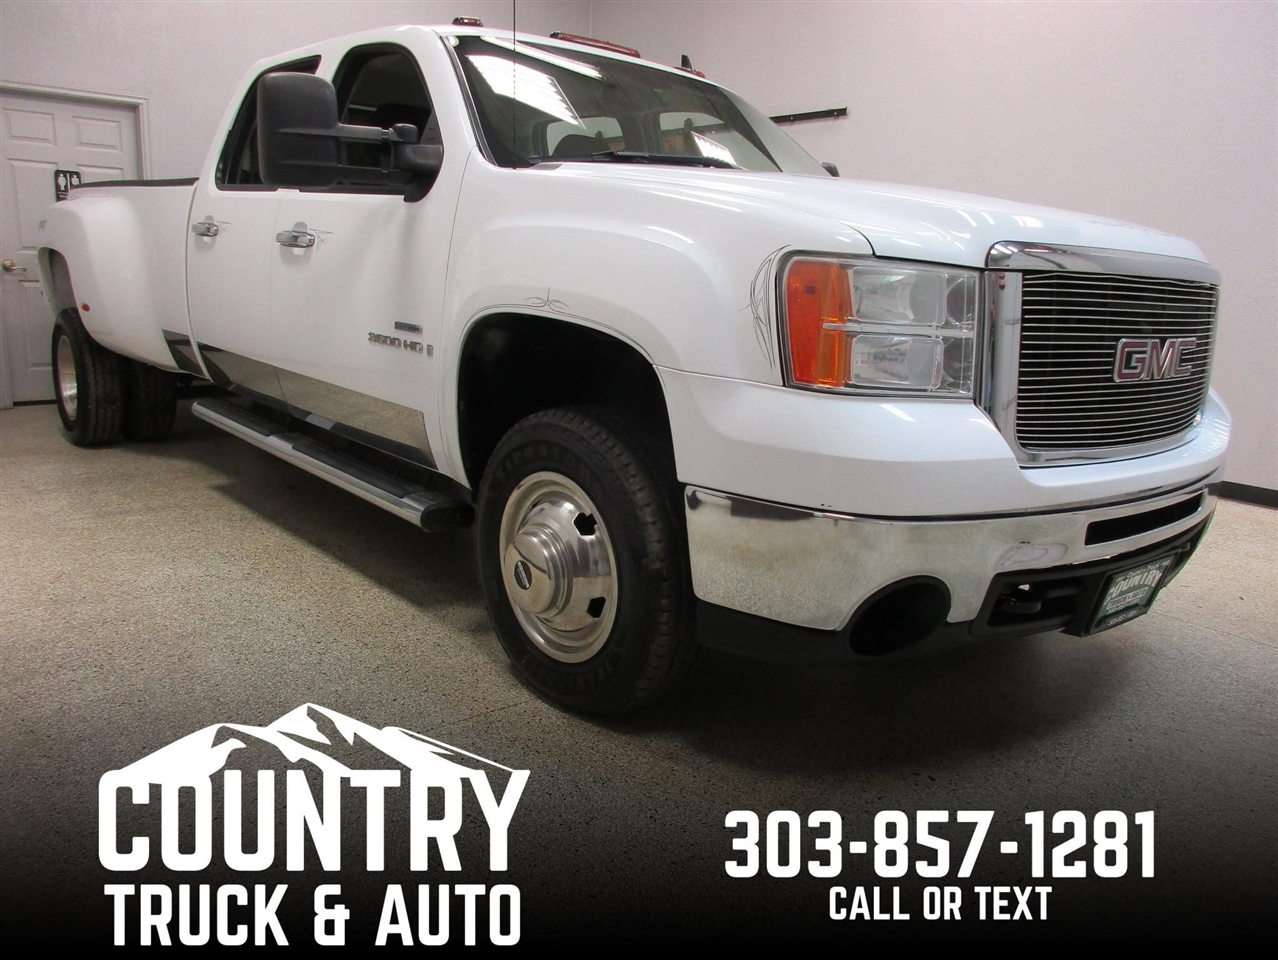 2009 GMC Sierra 3500HD Crew Cab Long Bed 4WD DRW